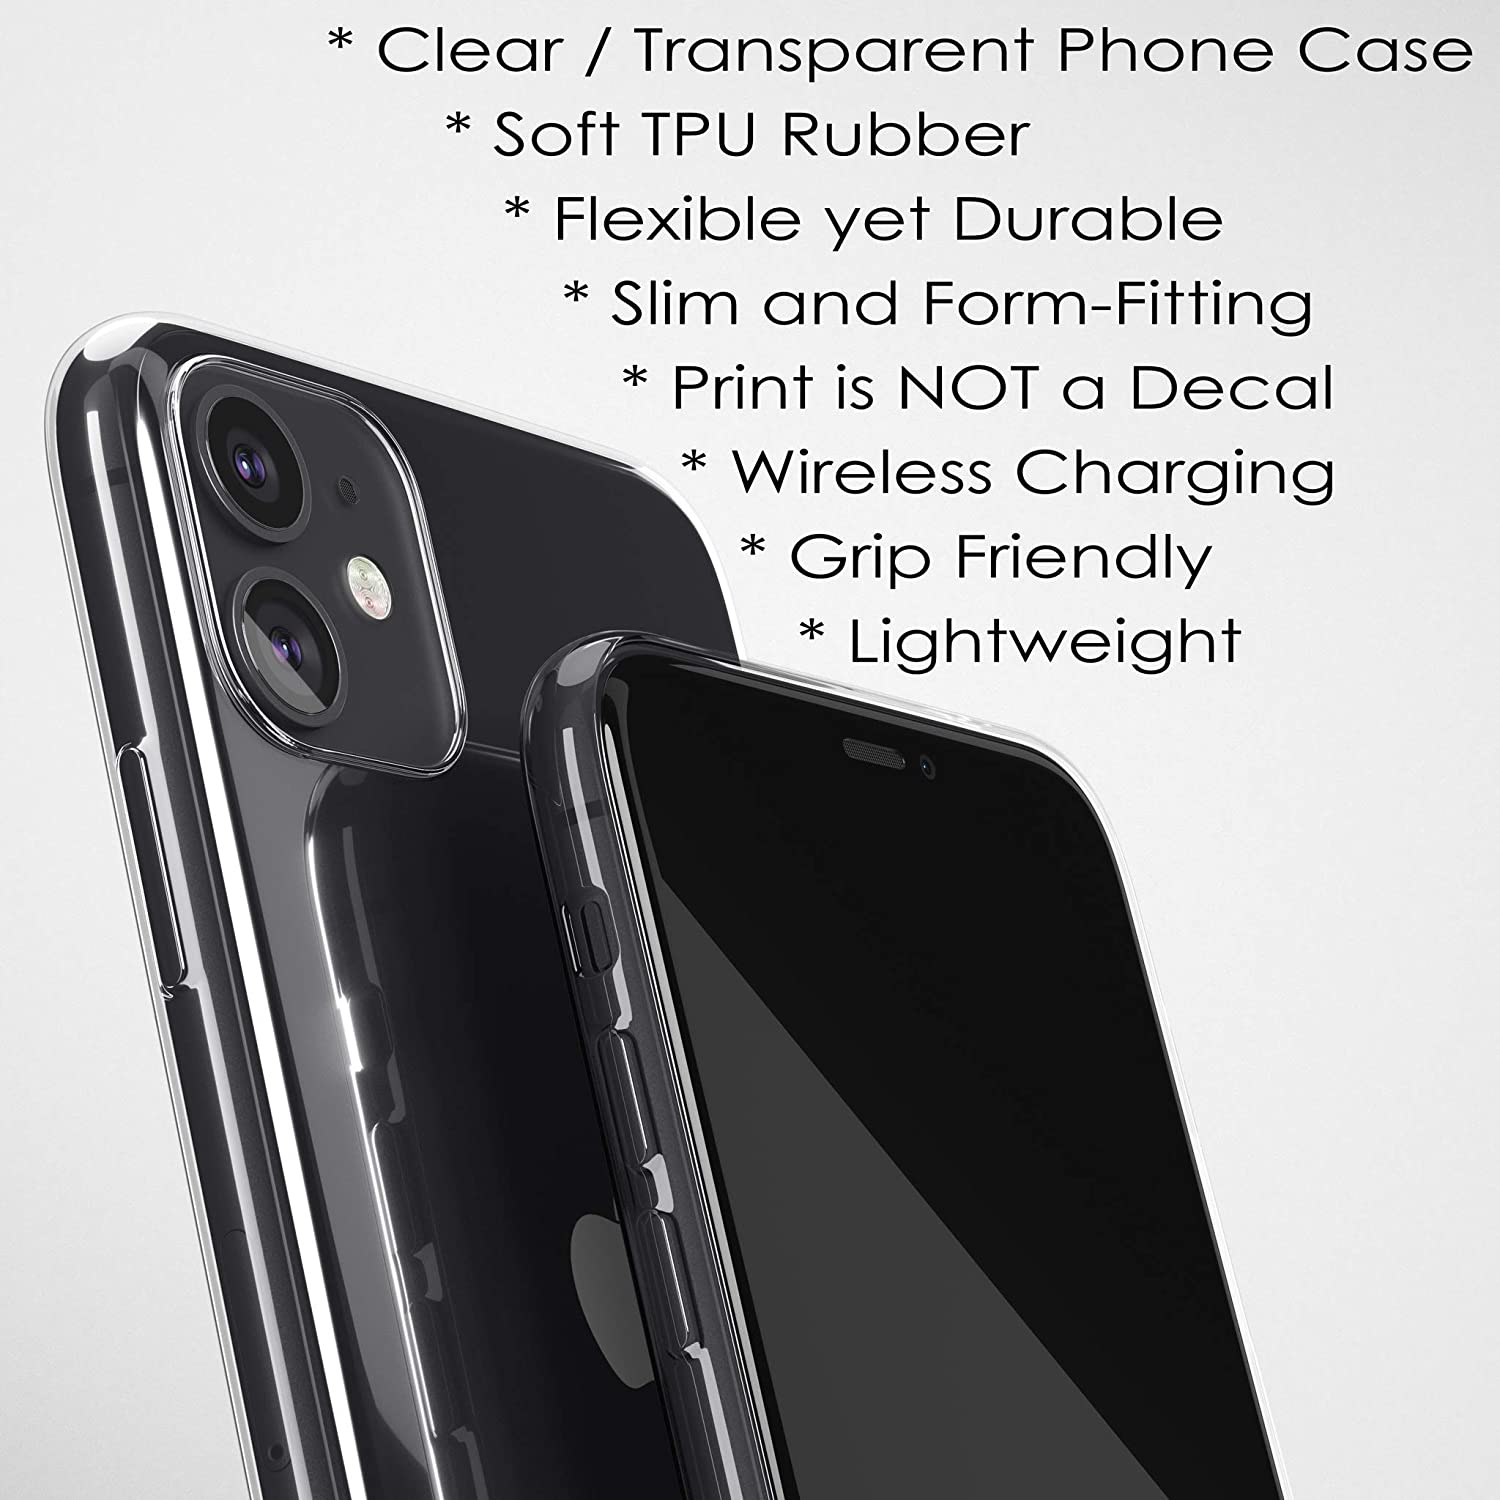 Clear Phone Case with Personalized Name for iPhone XS Max XR X 10S 10R 10 8 Plus 7 6s 6 SE 5s 5 Slim Flexible Transparent TPU Rubber